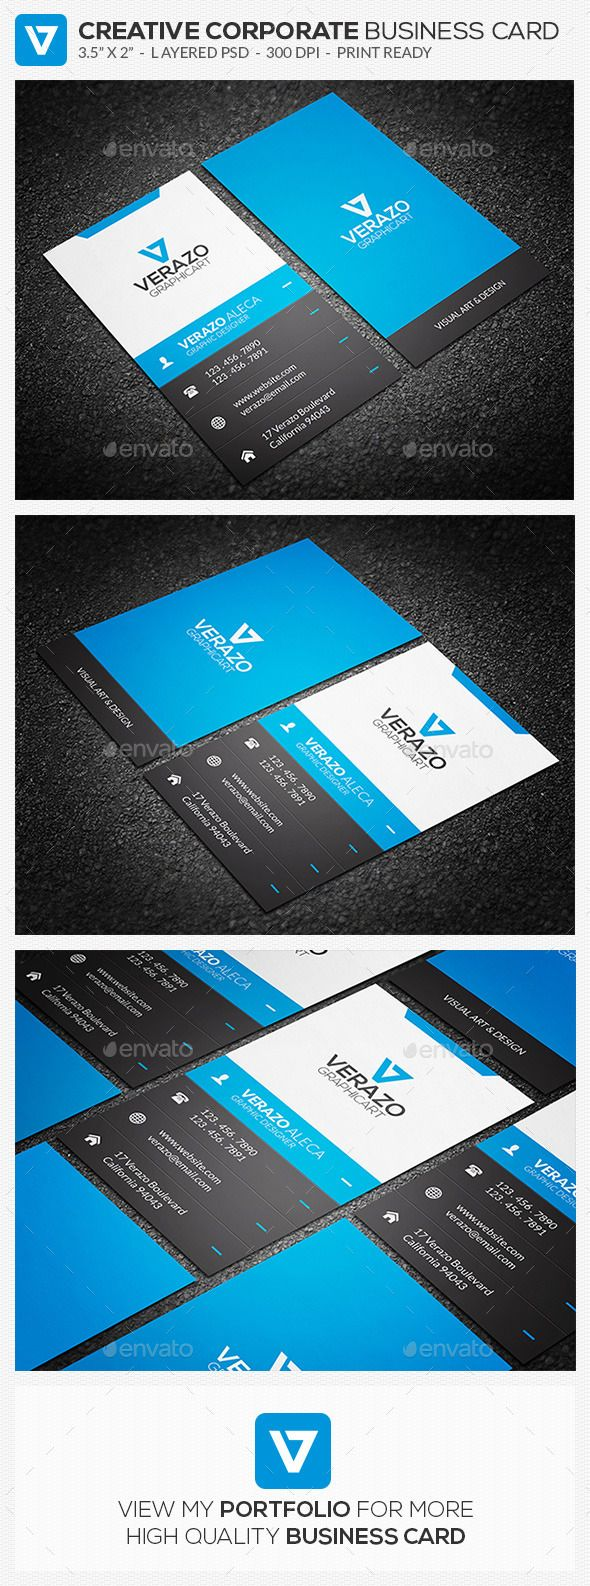 367 best card designs images on pinterest business cards lipsense creative corporate business card 61 reheart Choice Image